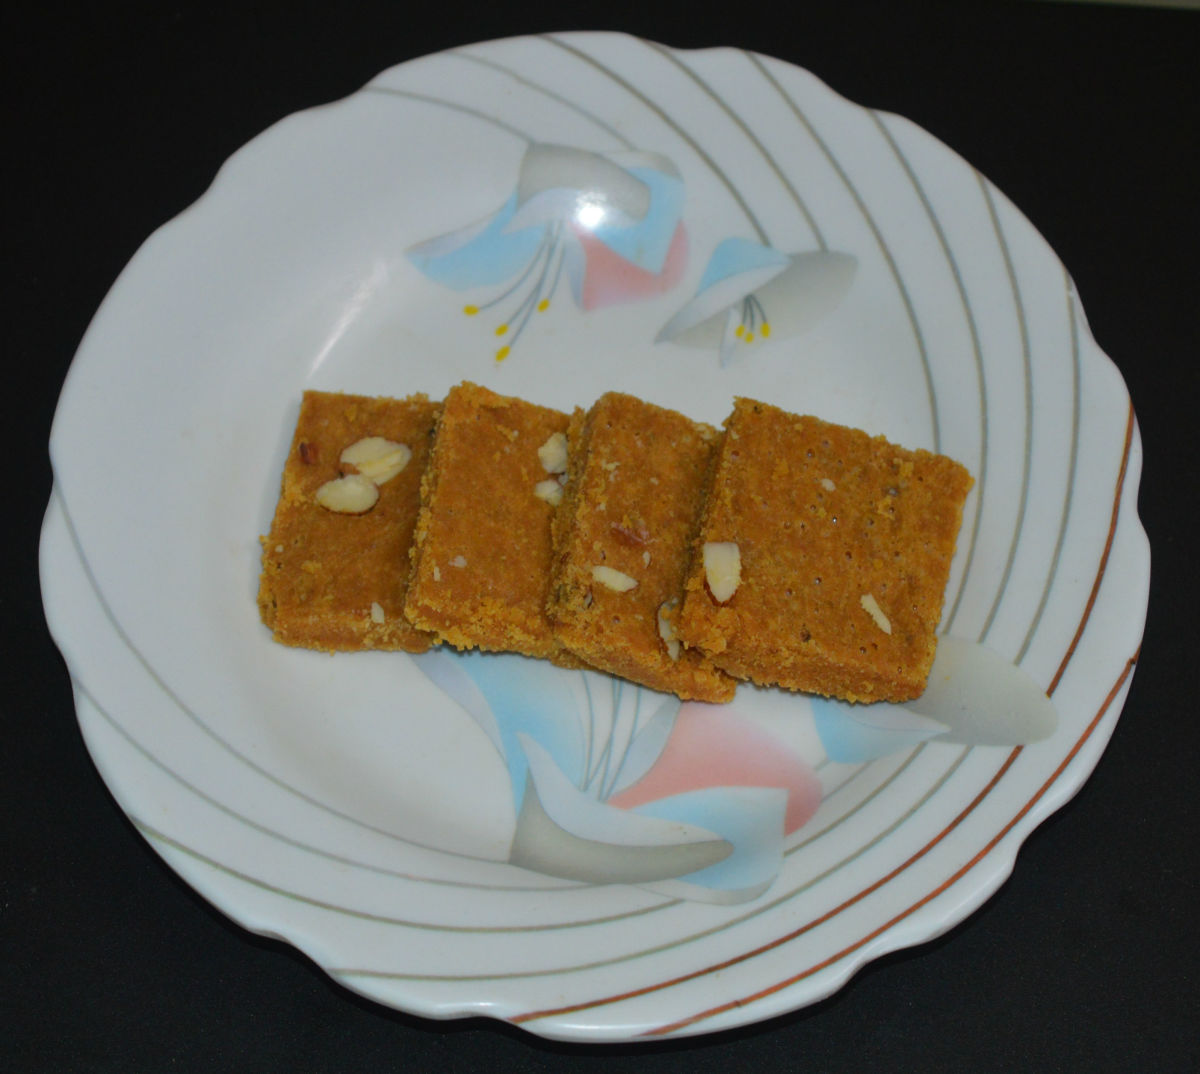 Flavorful and delicious besan burfi is ready! Enjoy. Store the remaining burfi in an airtight container for up to 10 days.